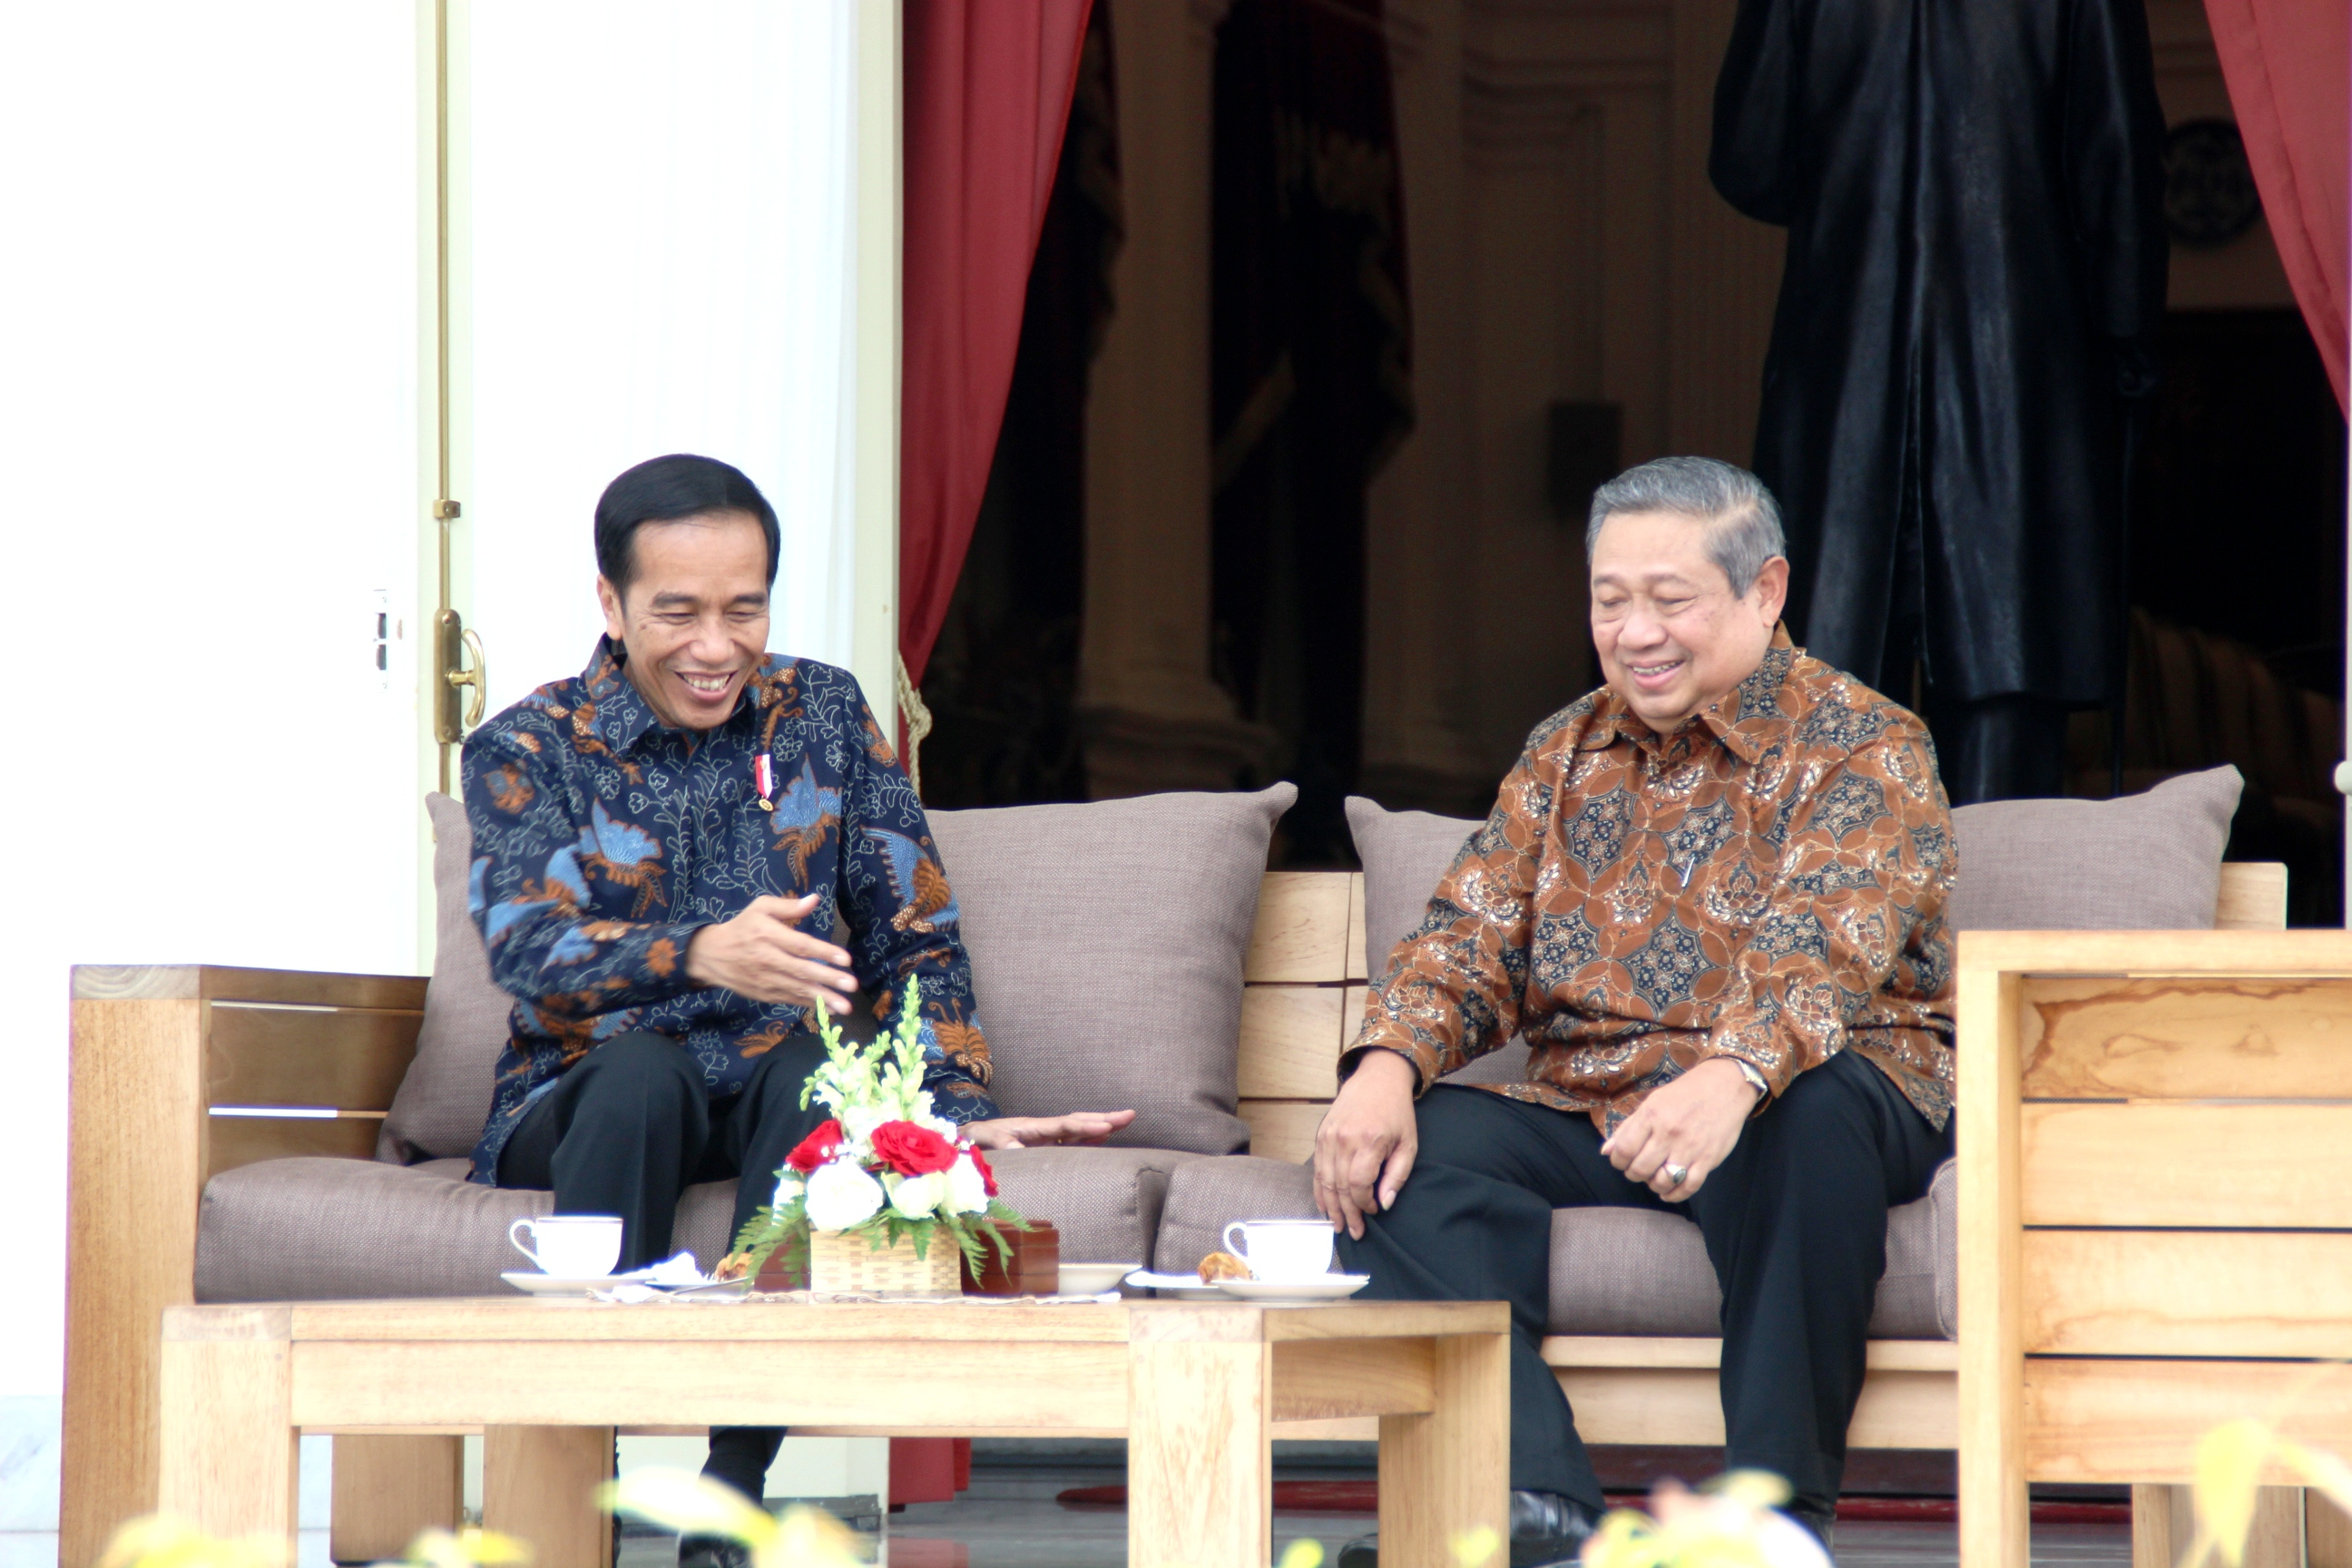 President Jokowi has a relax conversation with the 6thPresident of Indonesia Susilo Bambang Yudhoyono, at the back yard of the Merdeka Palace, Jakarta, on Thursday (9/3) afternoon (Photo: PR/Anggun)